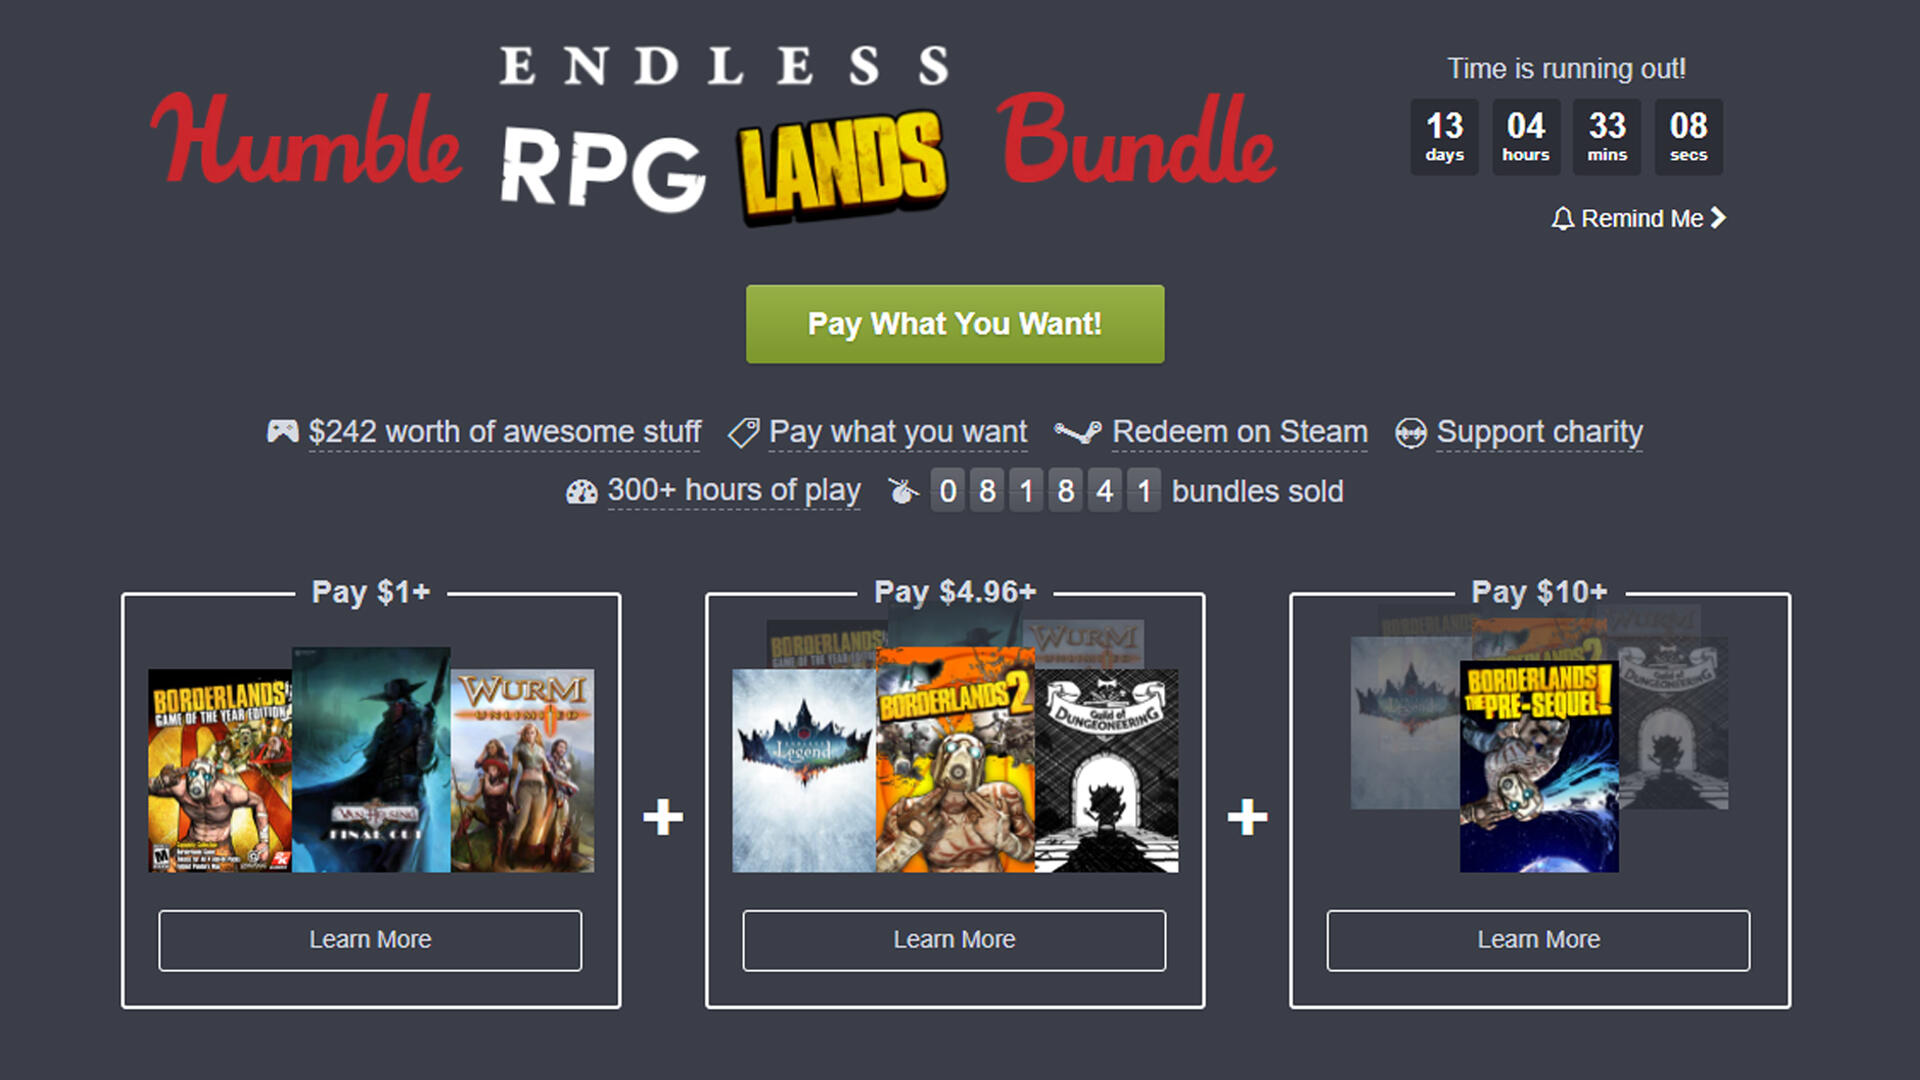 Get All of Borderlands and More in the Humble Endless RPG Lands Bundle